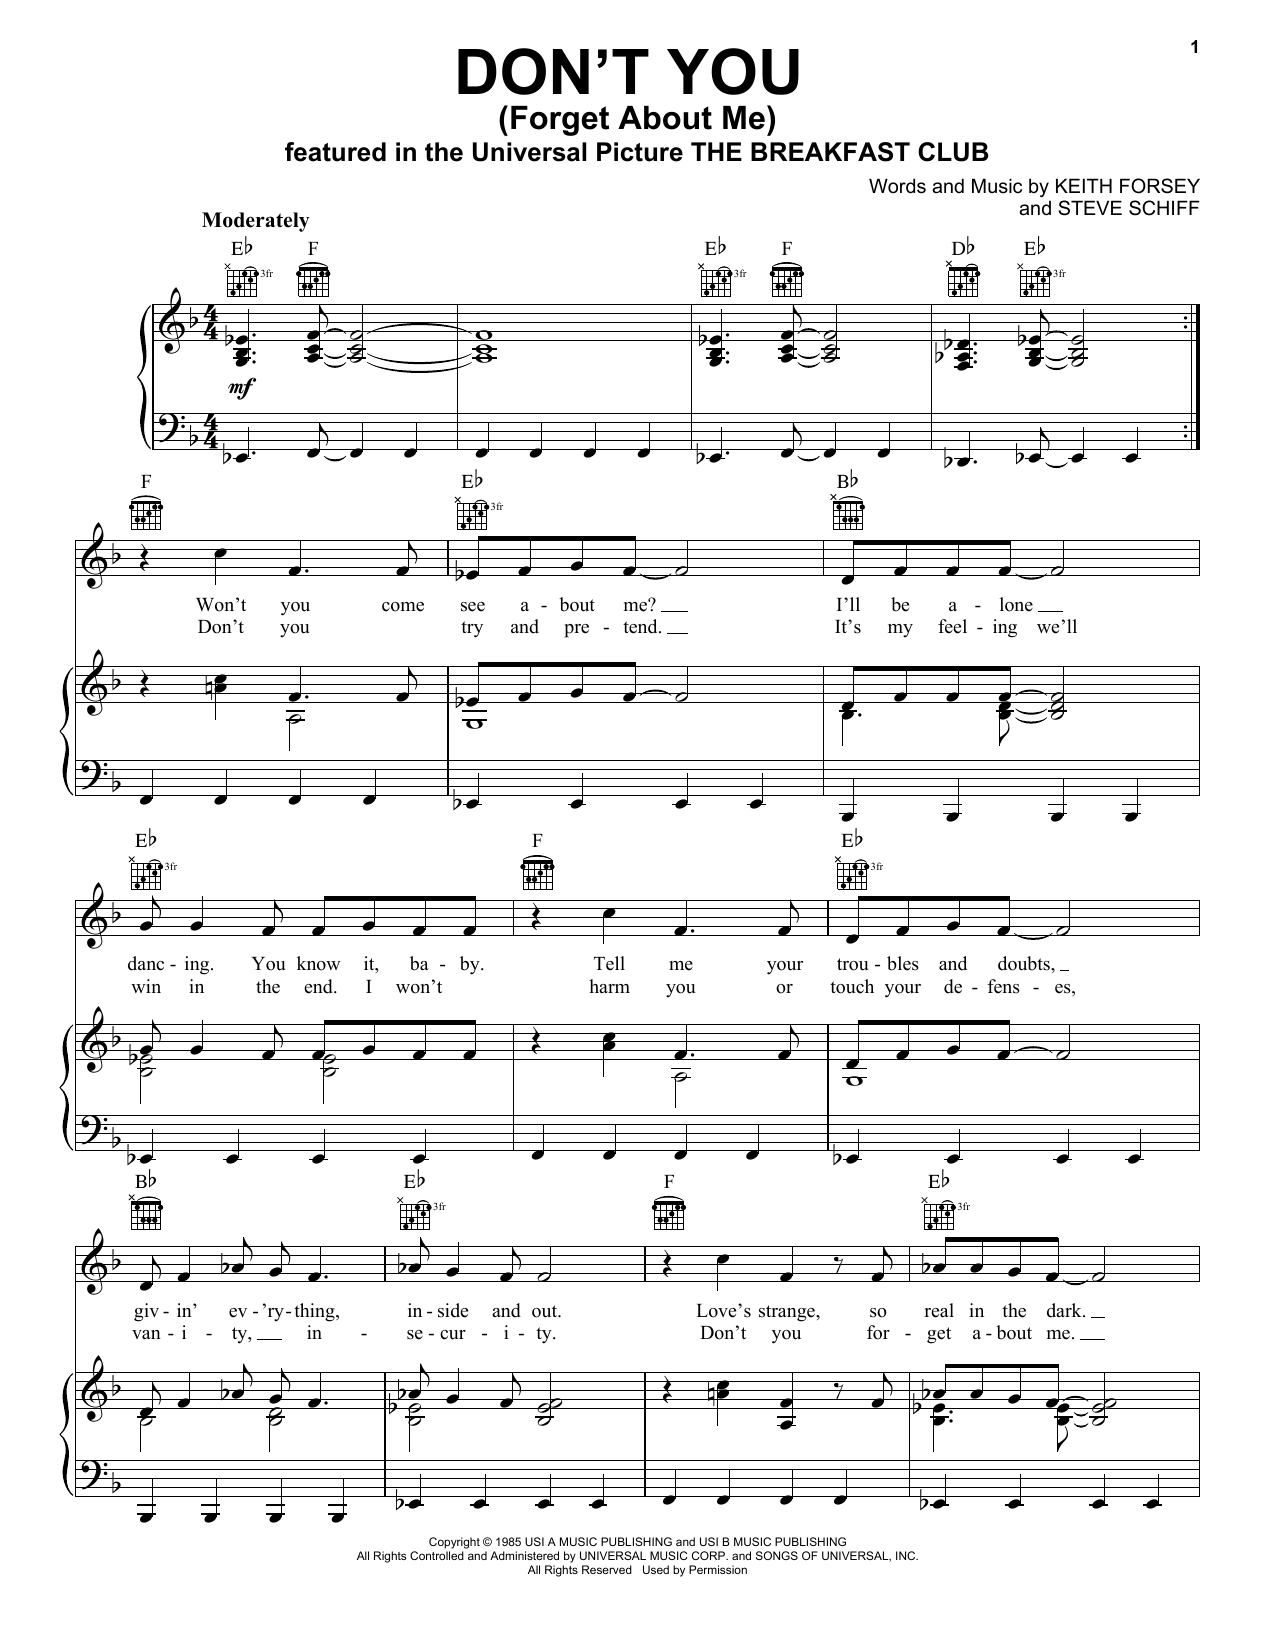 Simple Minds Don't You (Forget About Me) sheet music notes and chords. Download Printable PDF.